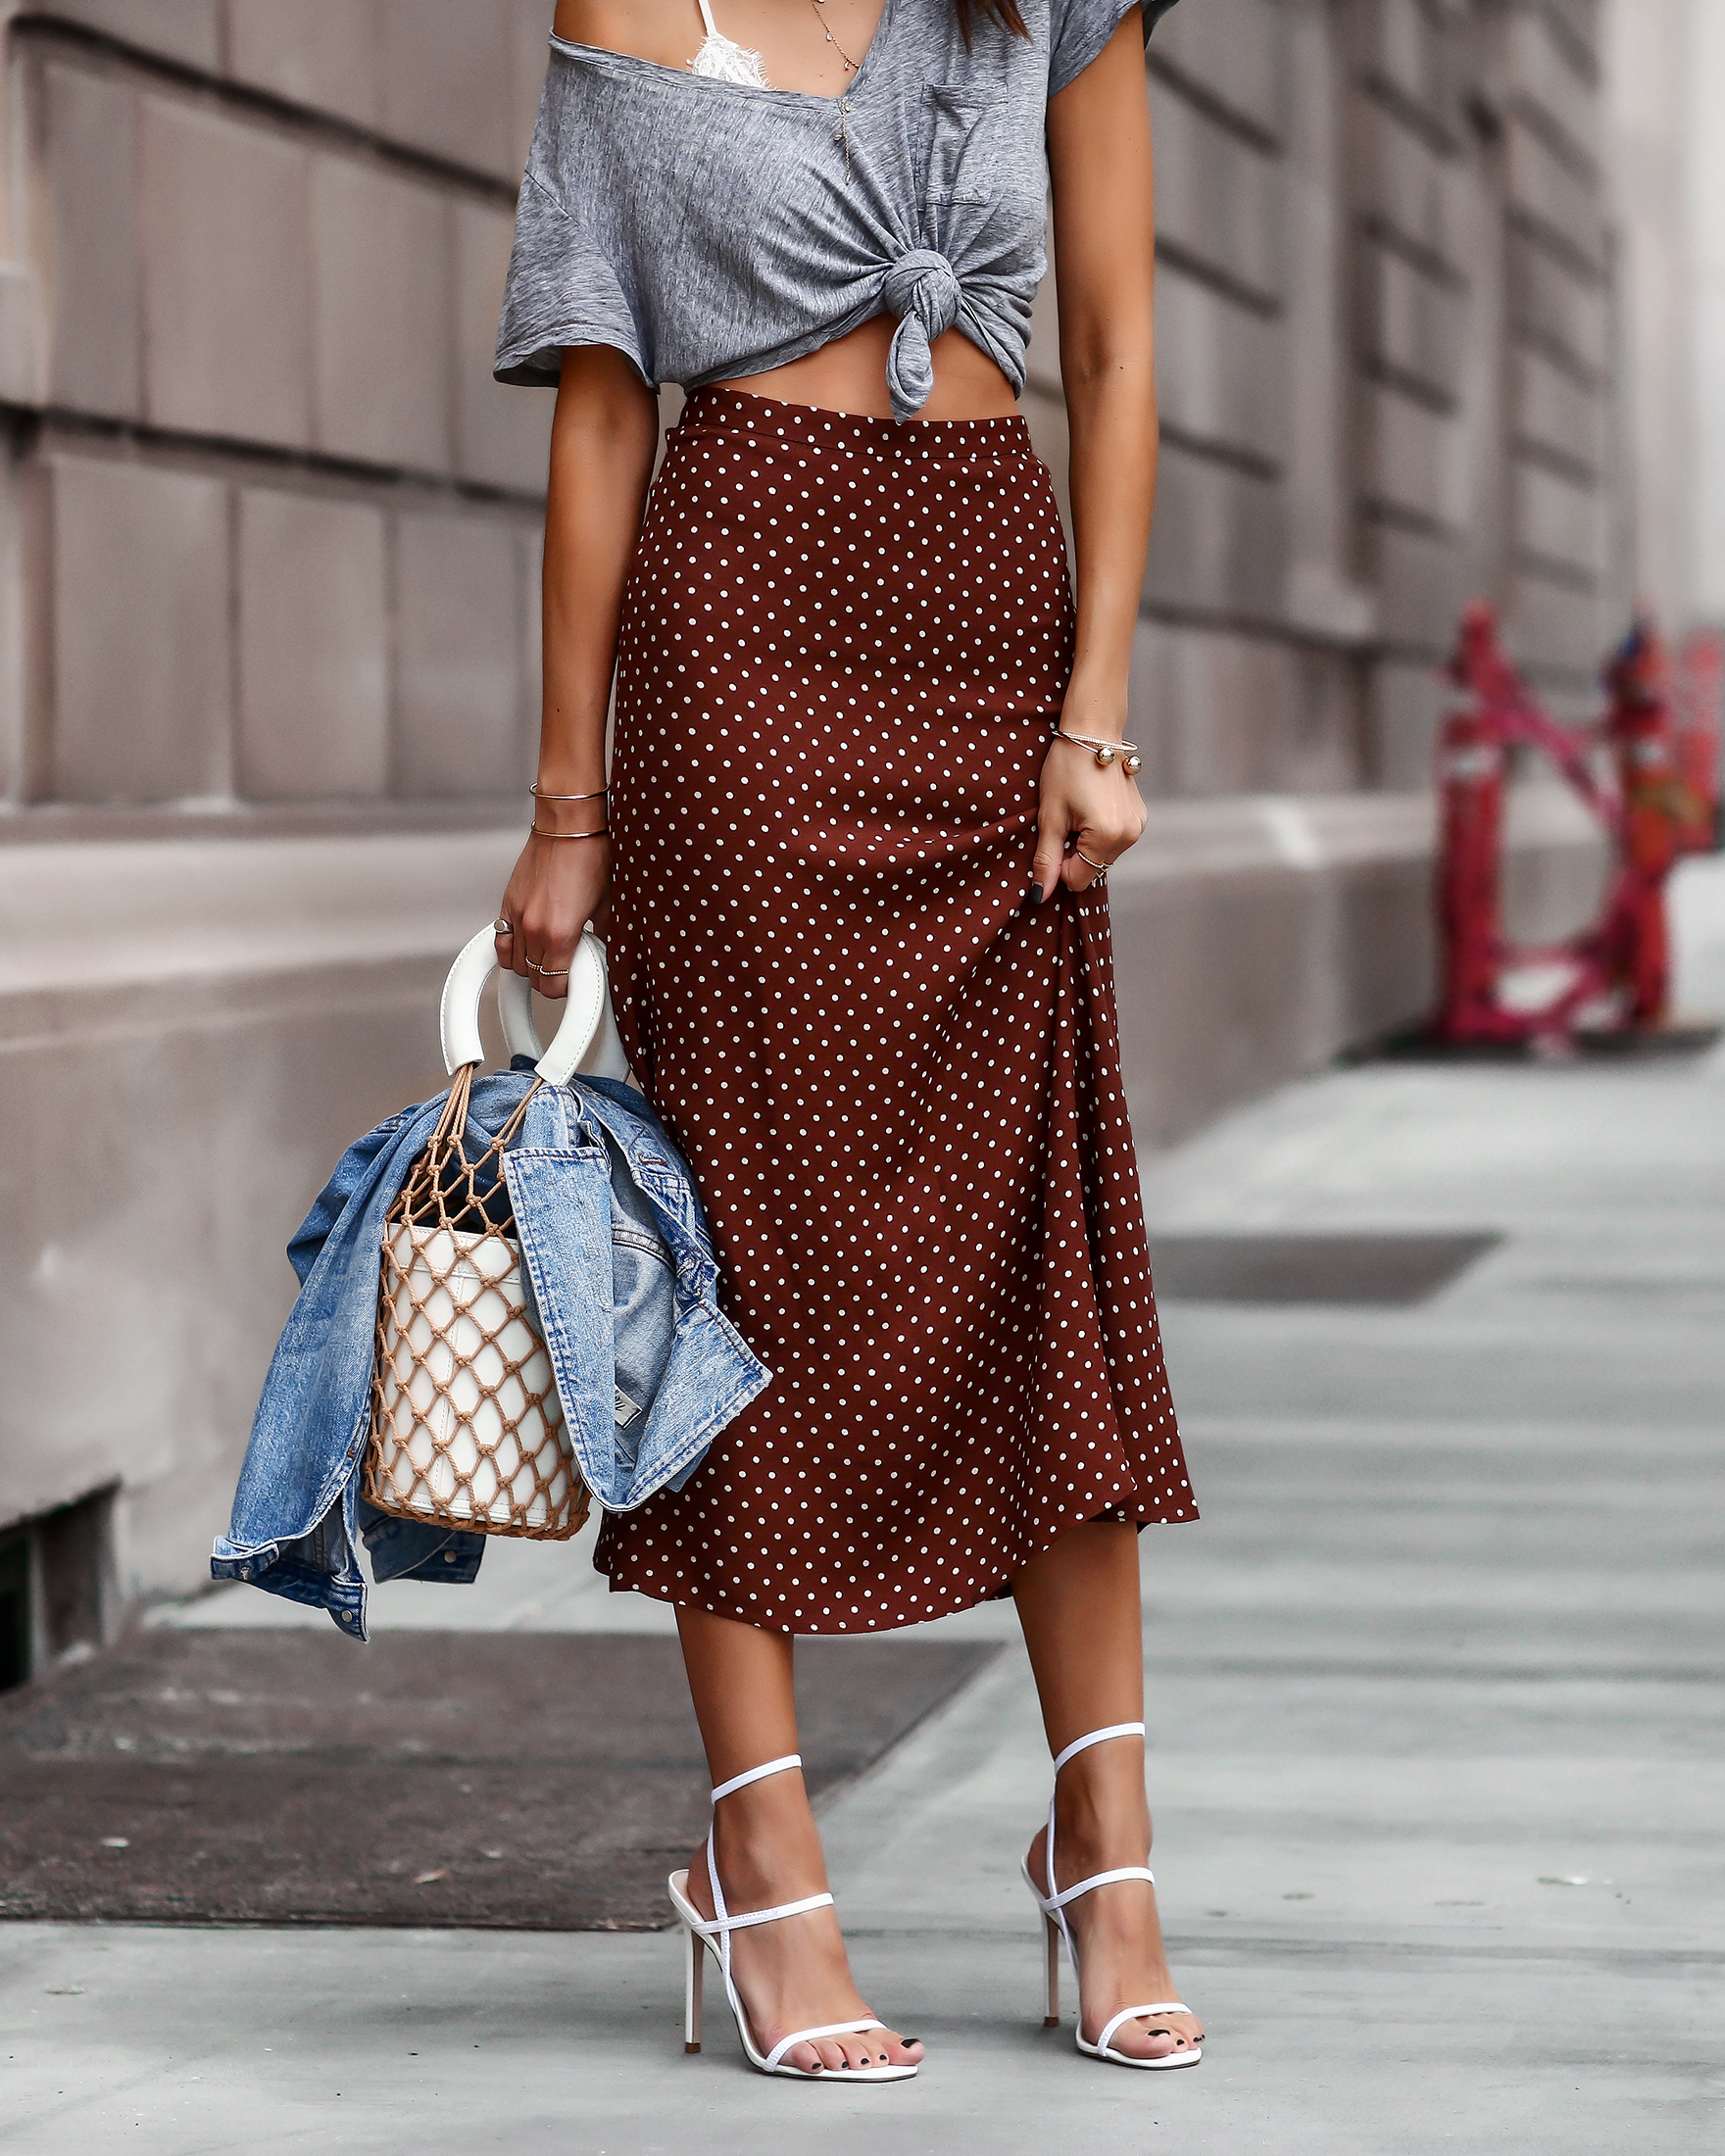 Woman in Nordstrom Summer Fashion Reformation Skirt and Steve Madden White Sandals